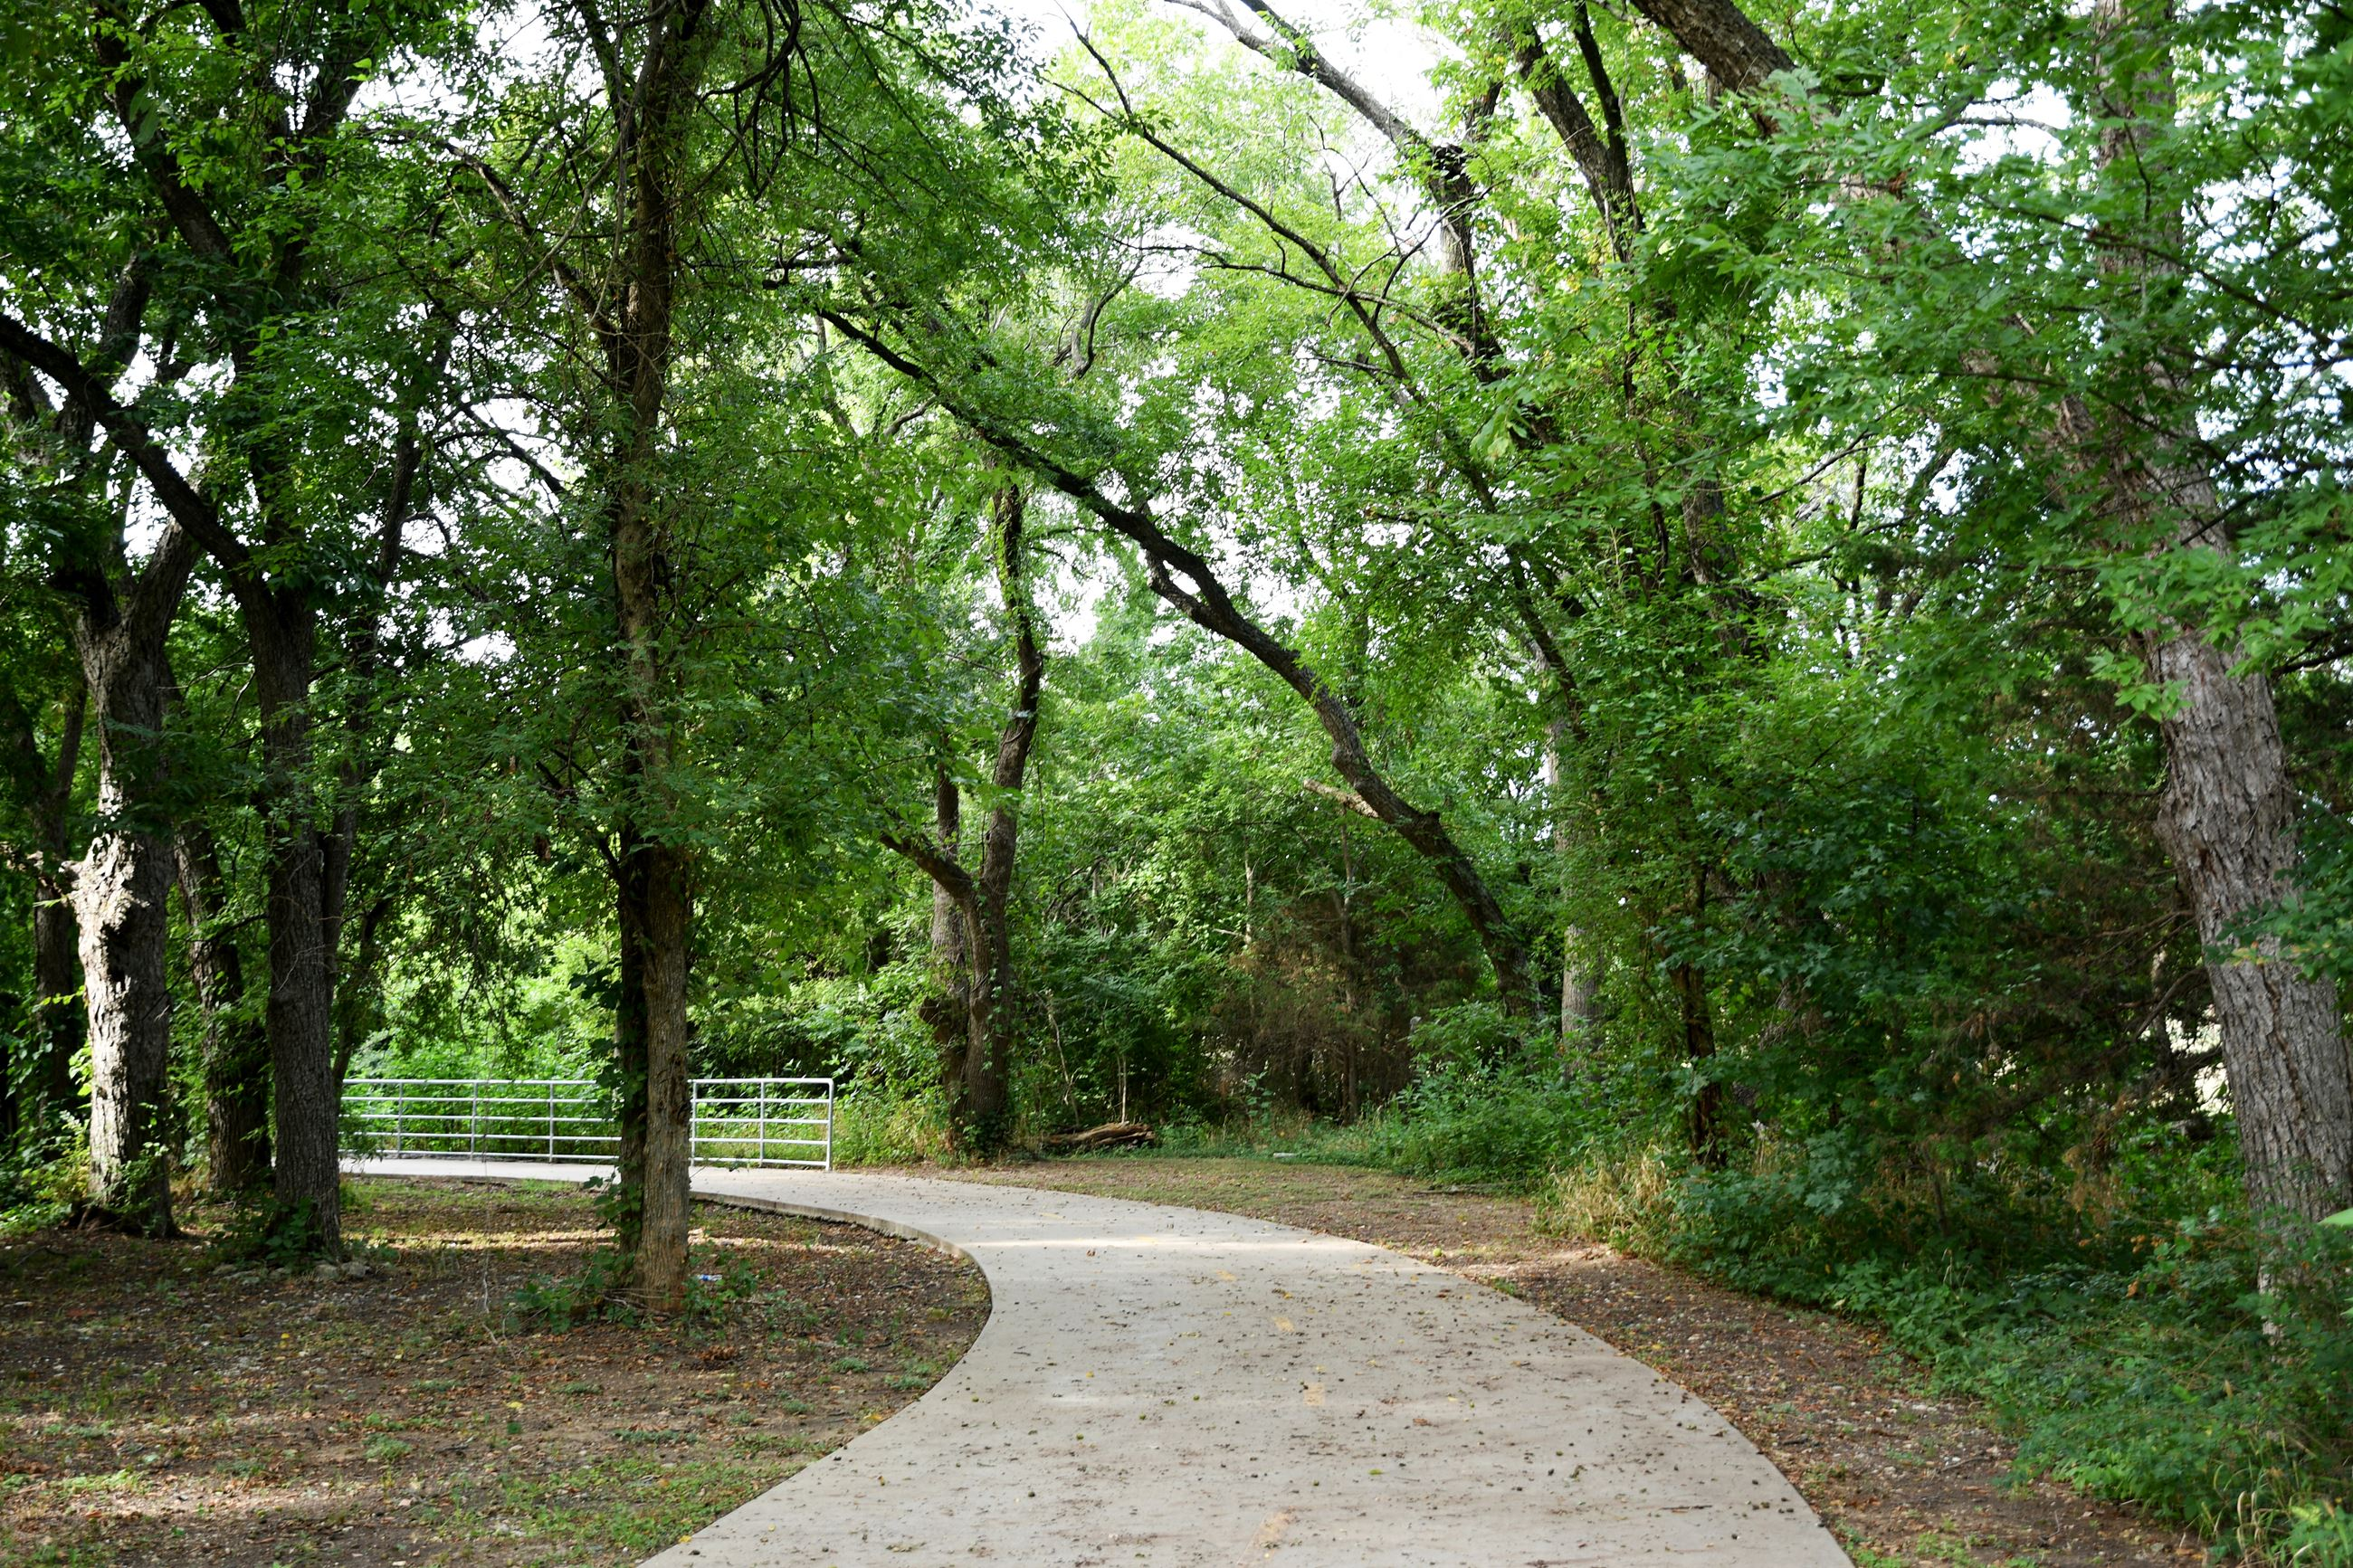 Paved trail through trees